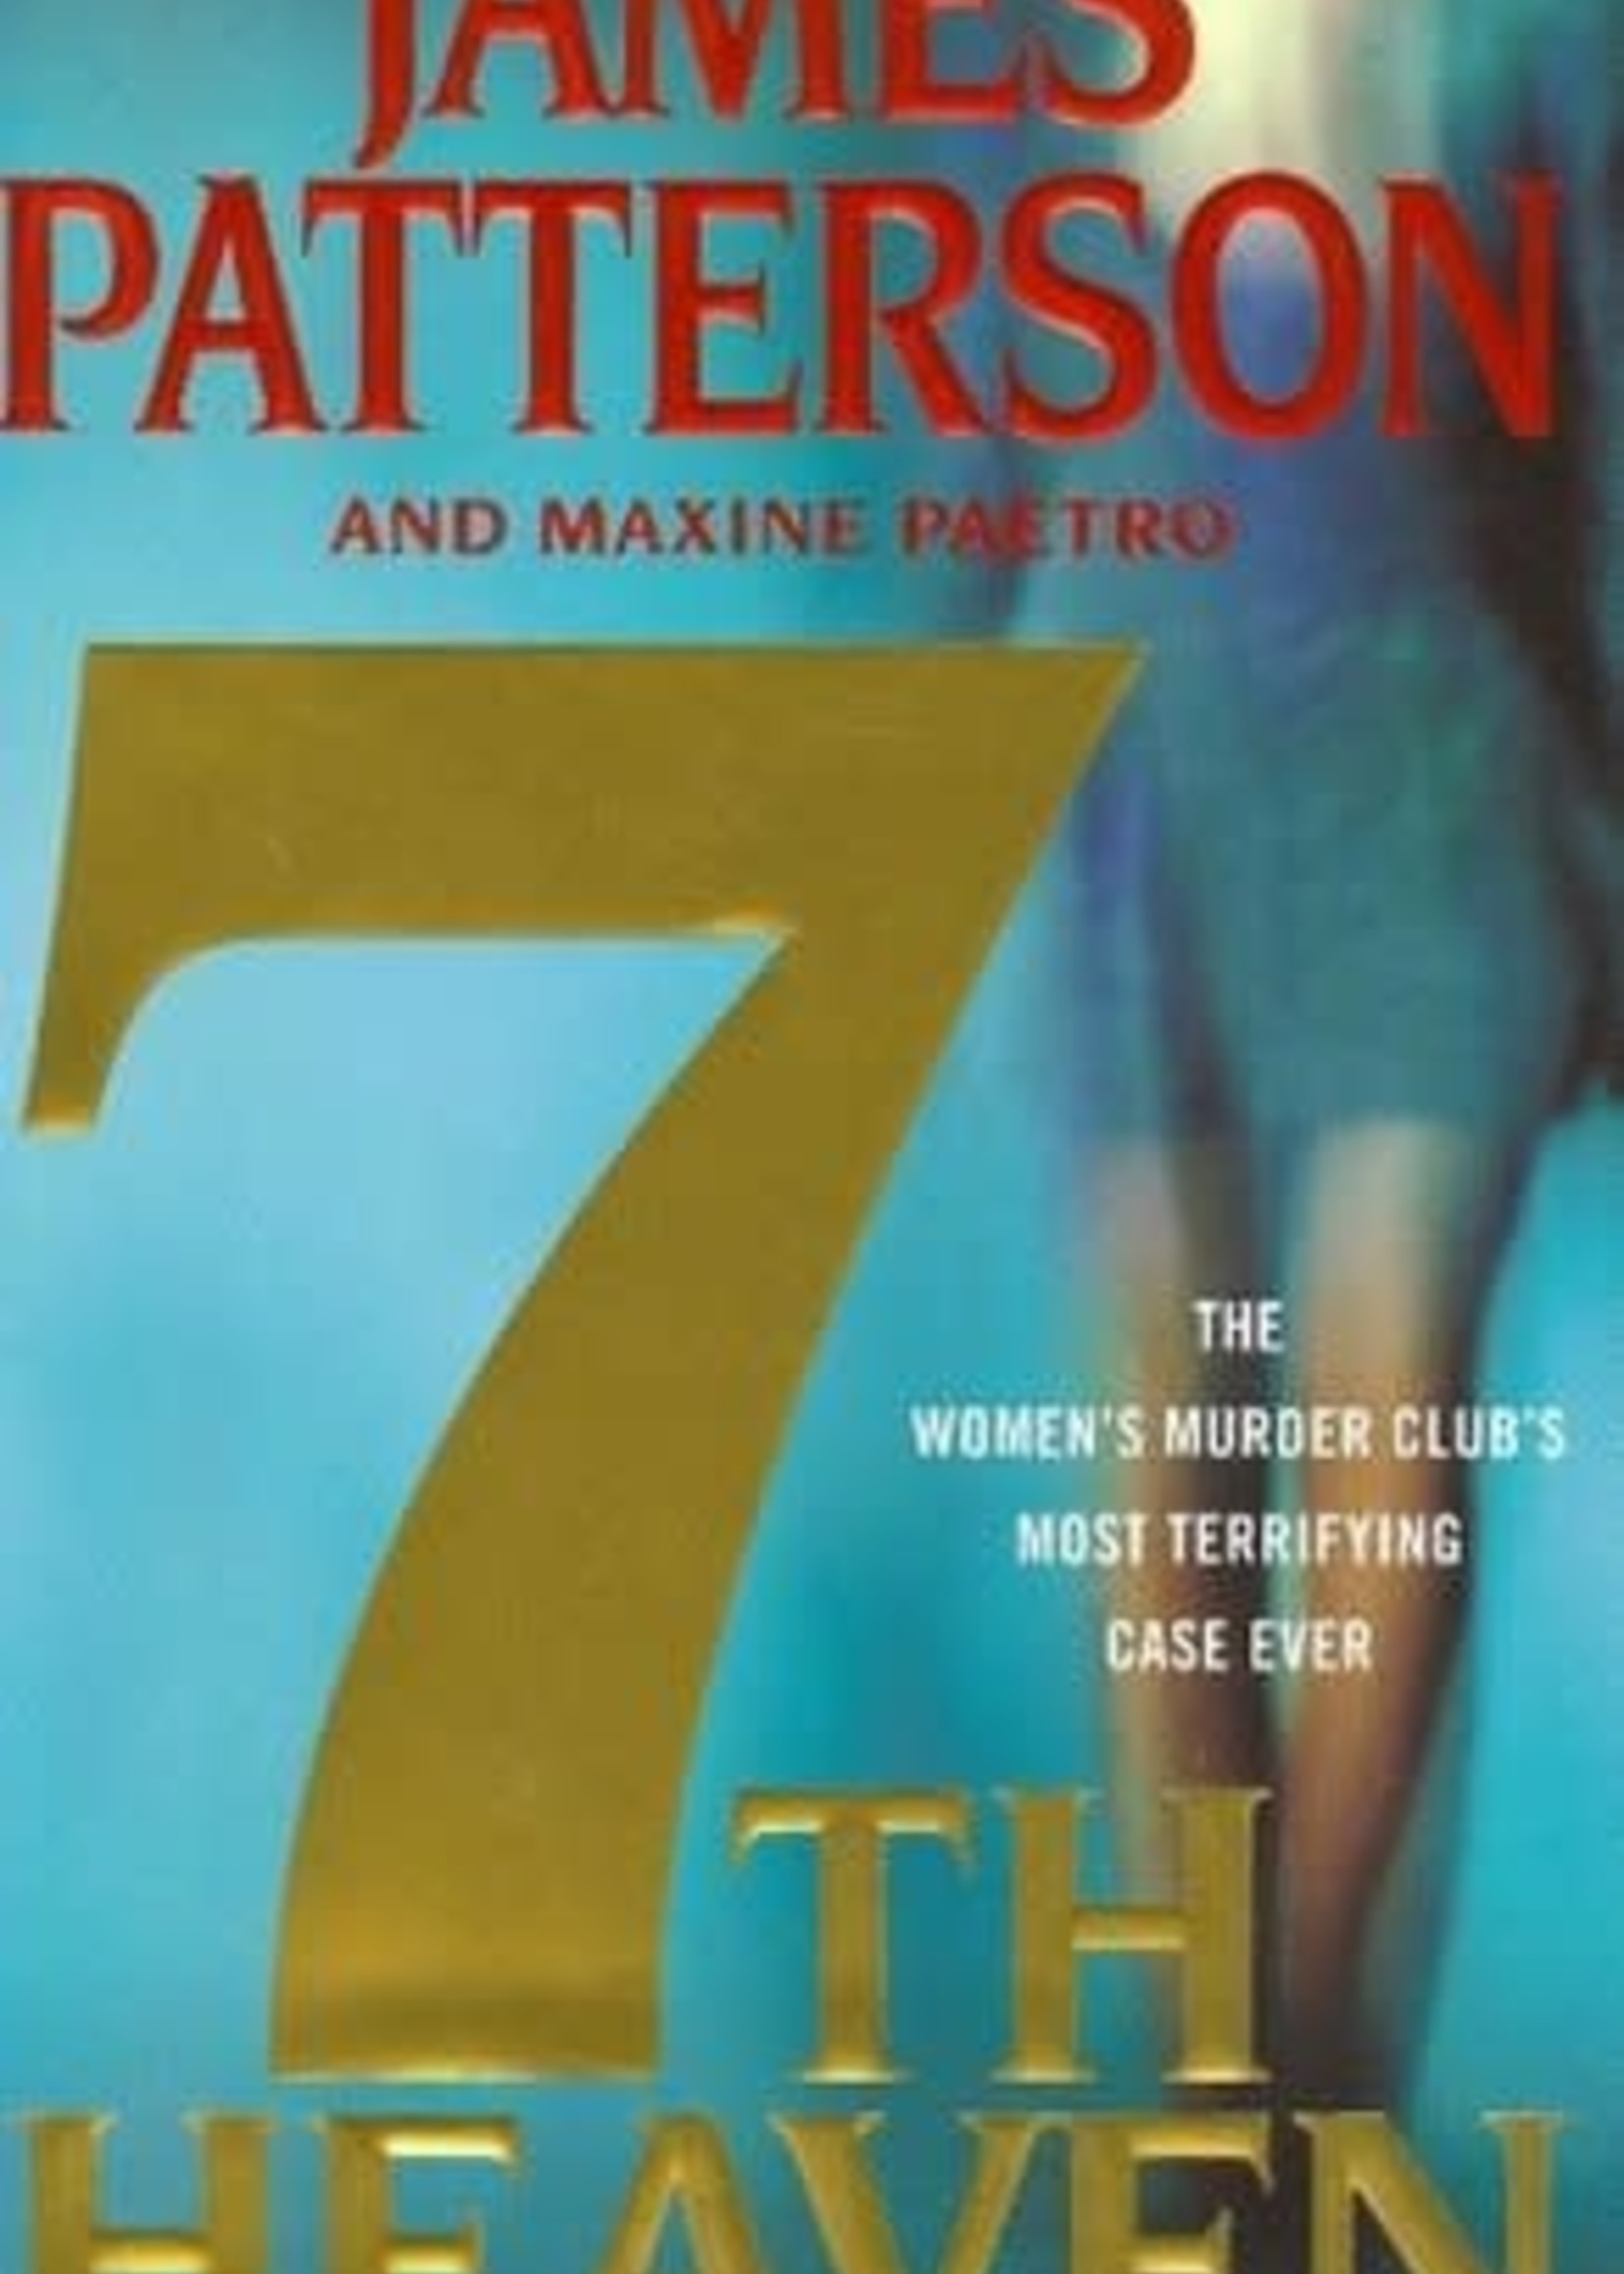 USED - 7th Heaven by James Patterson